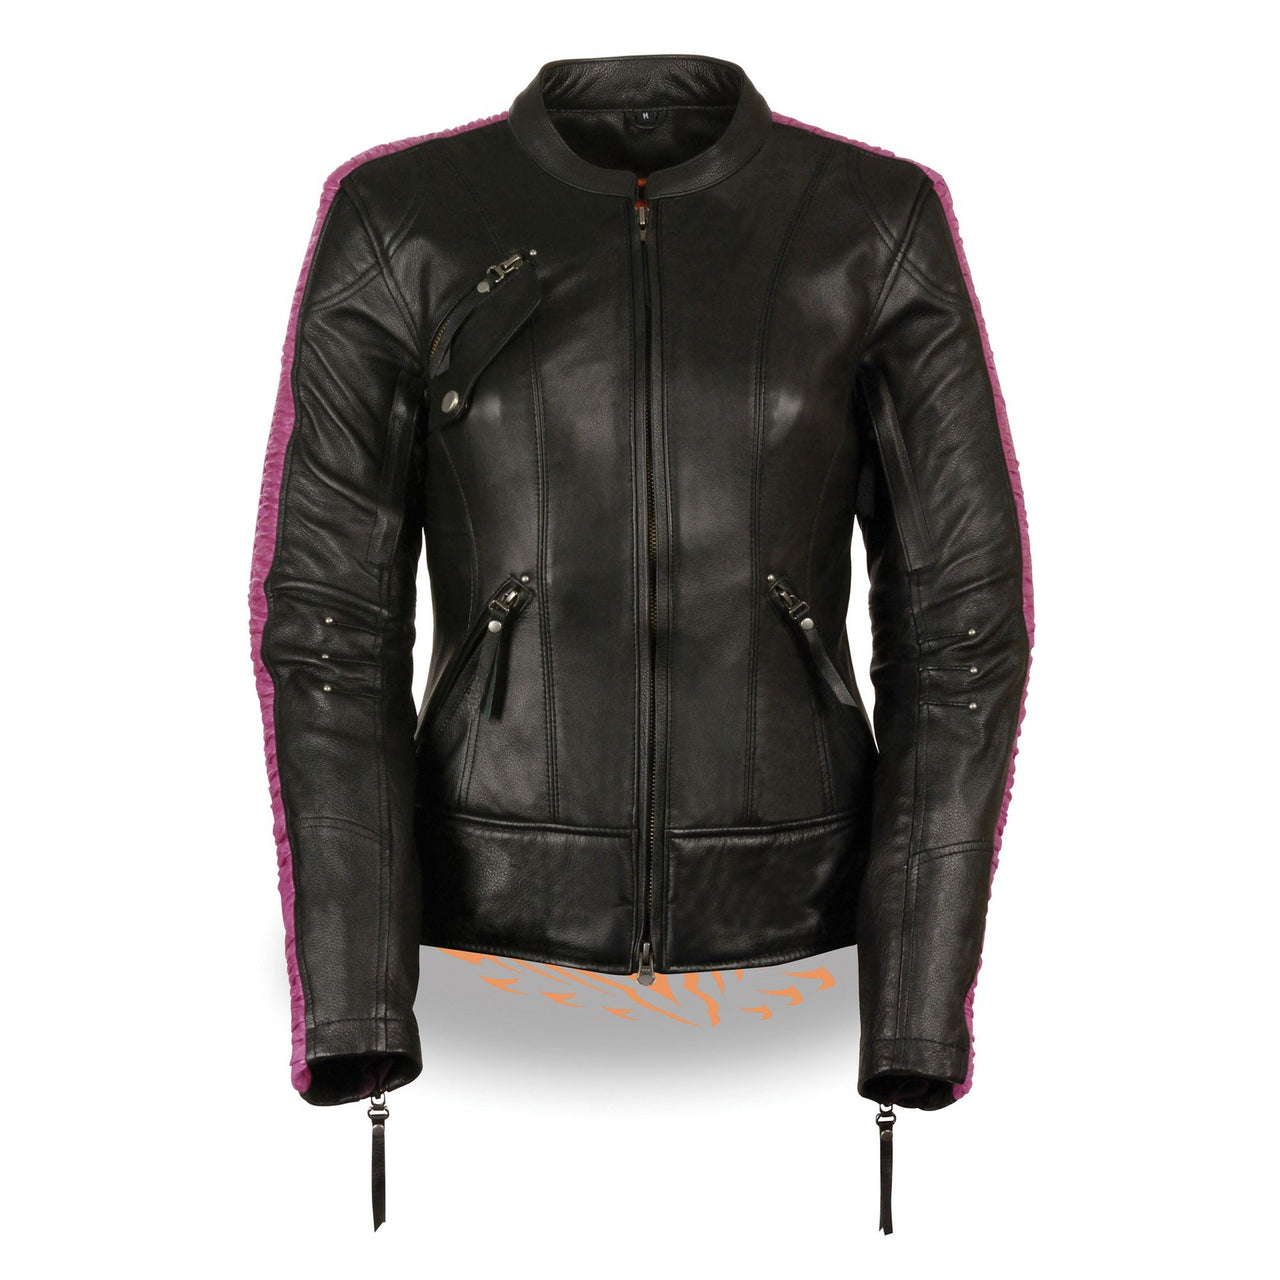 Ladies Black & Purple Racer Jacket with Phoenix Studding & Embroidery - HighwayLeather